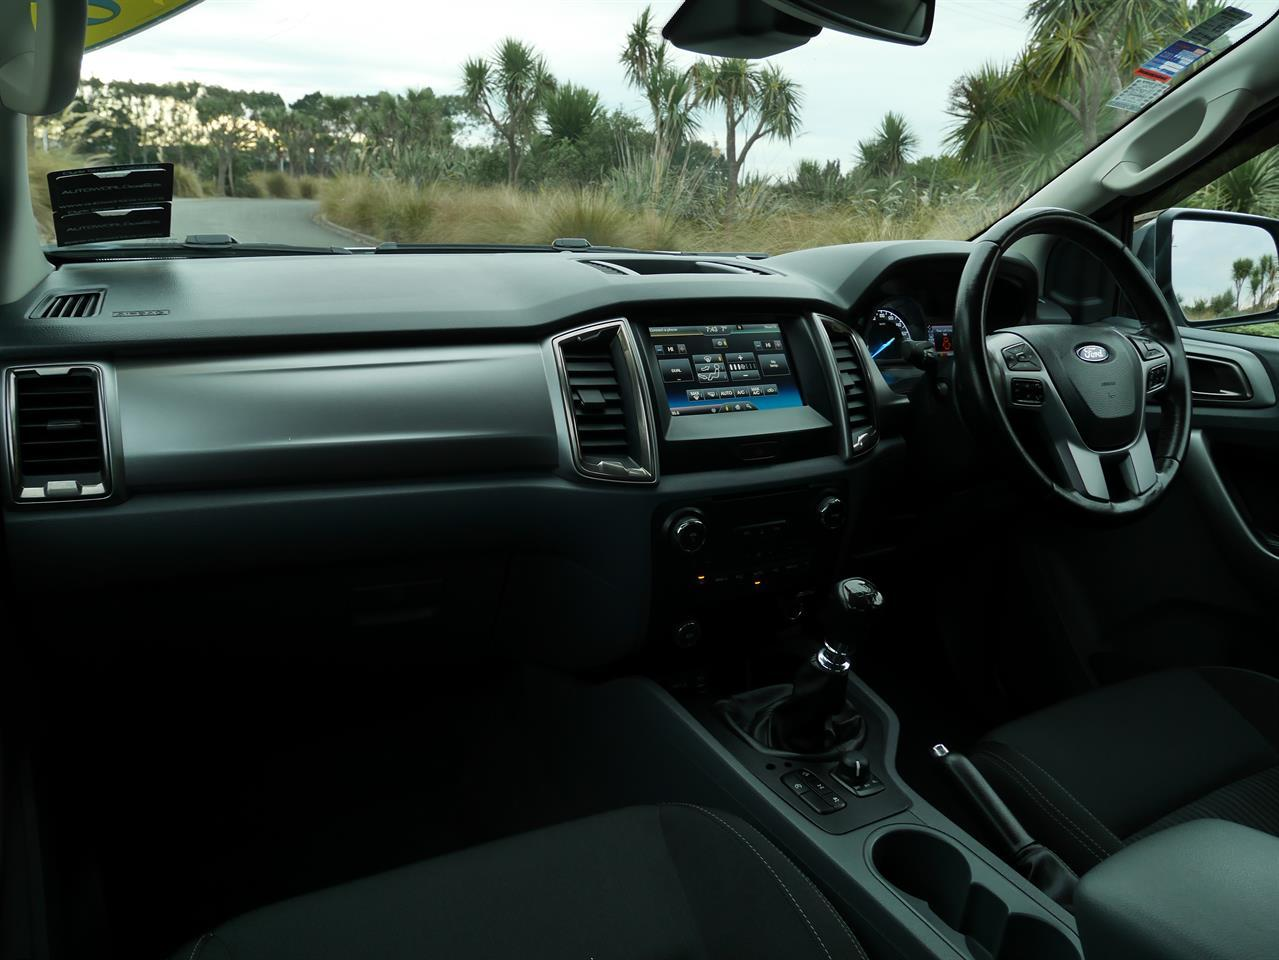 image-6, 2016 FORD RANGER XLT 3.2TD 4WD double cab at Invercargill